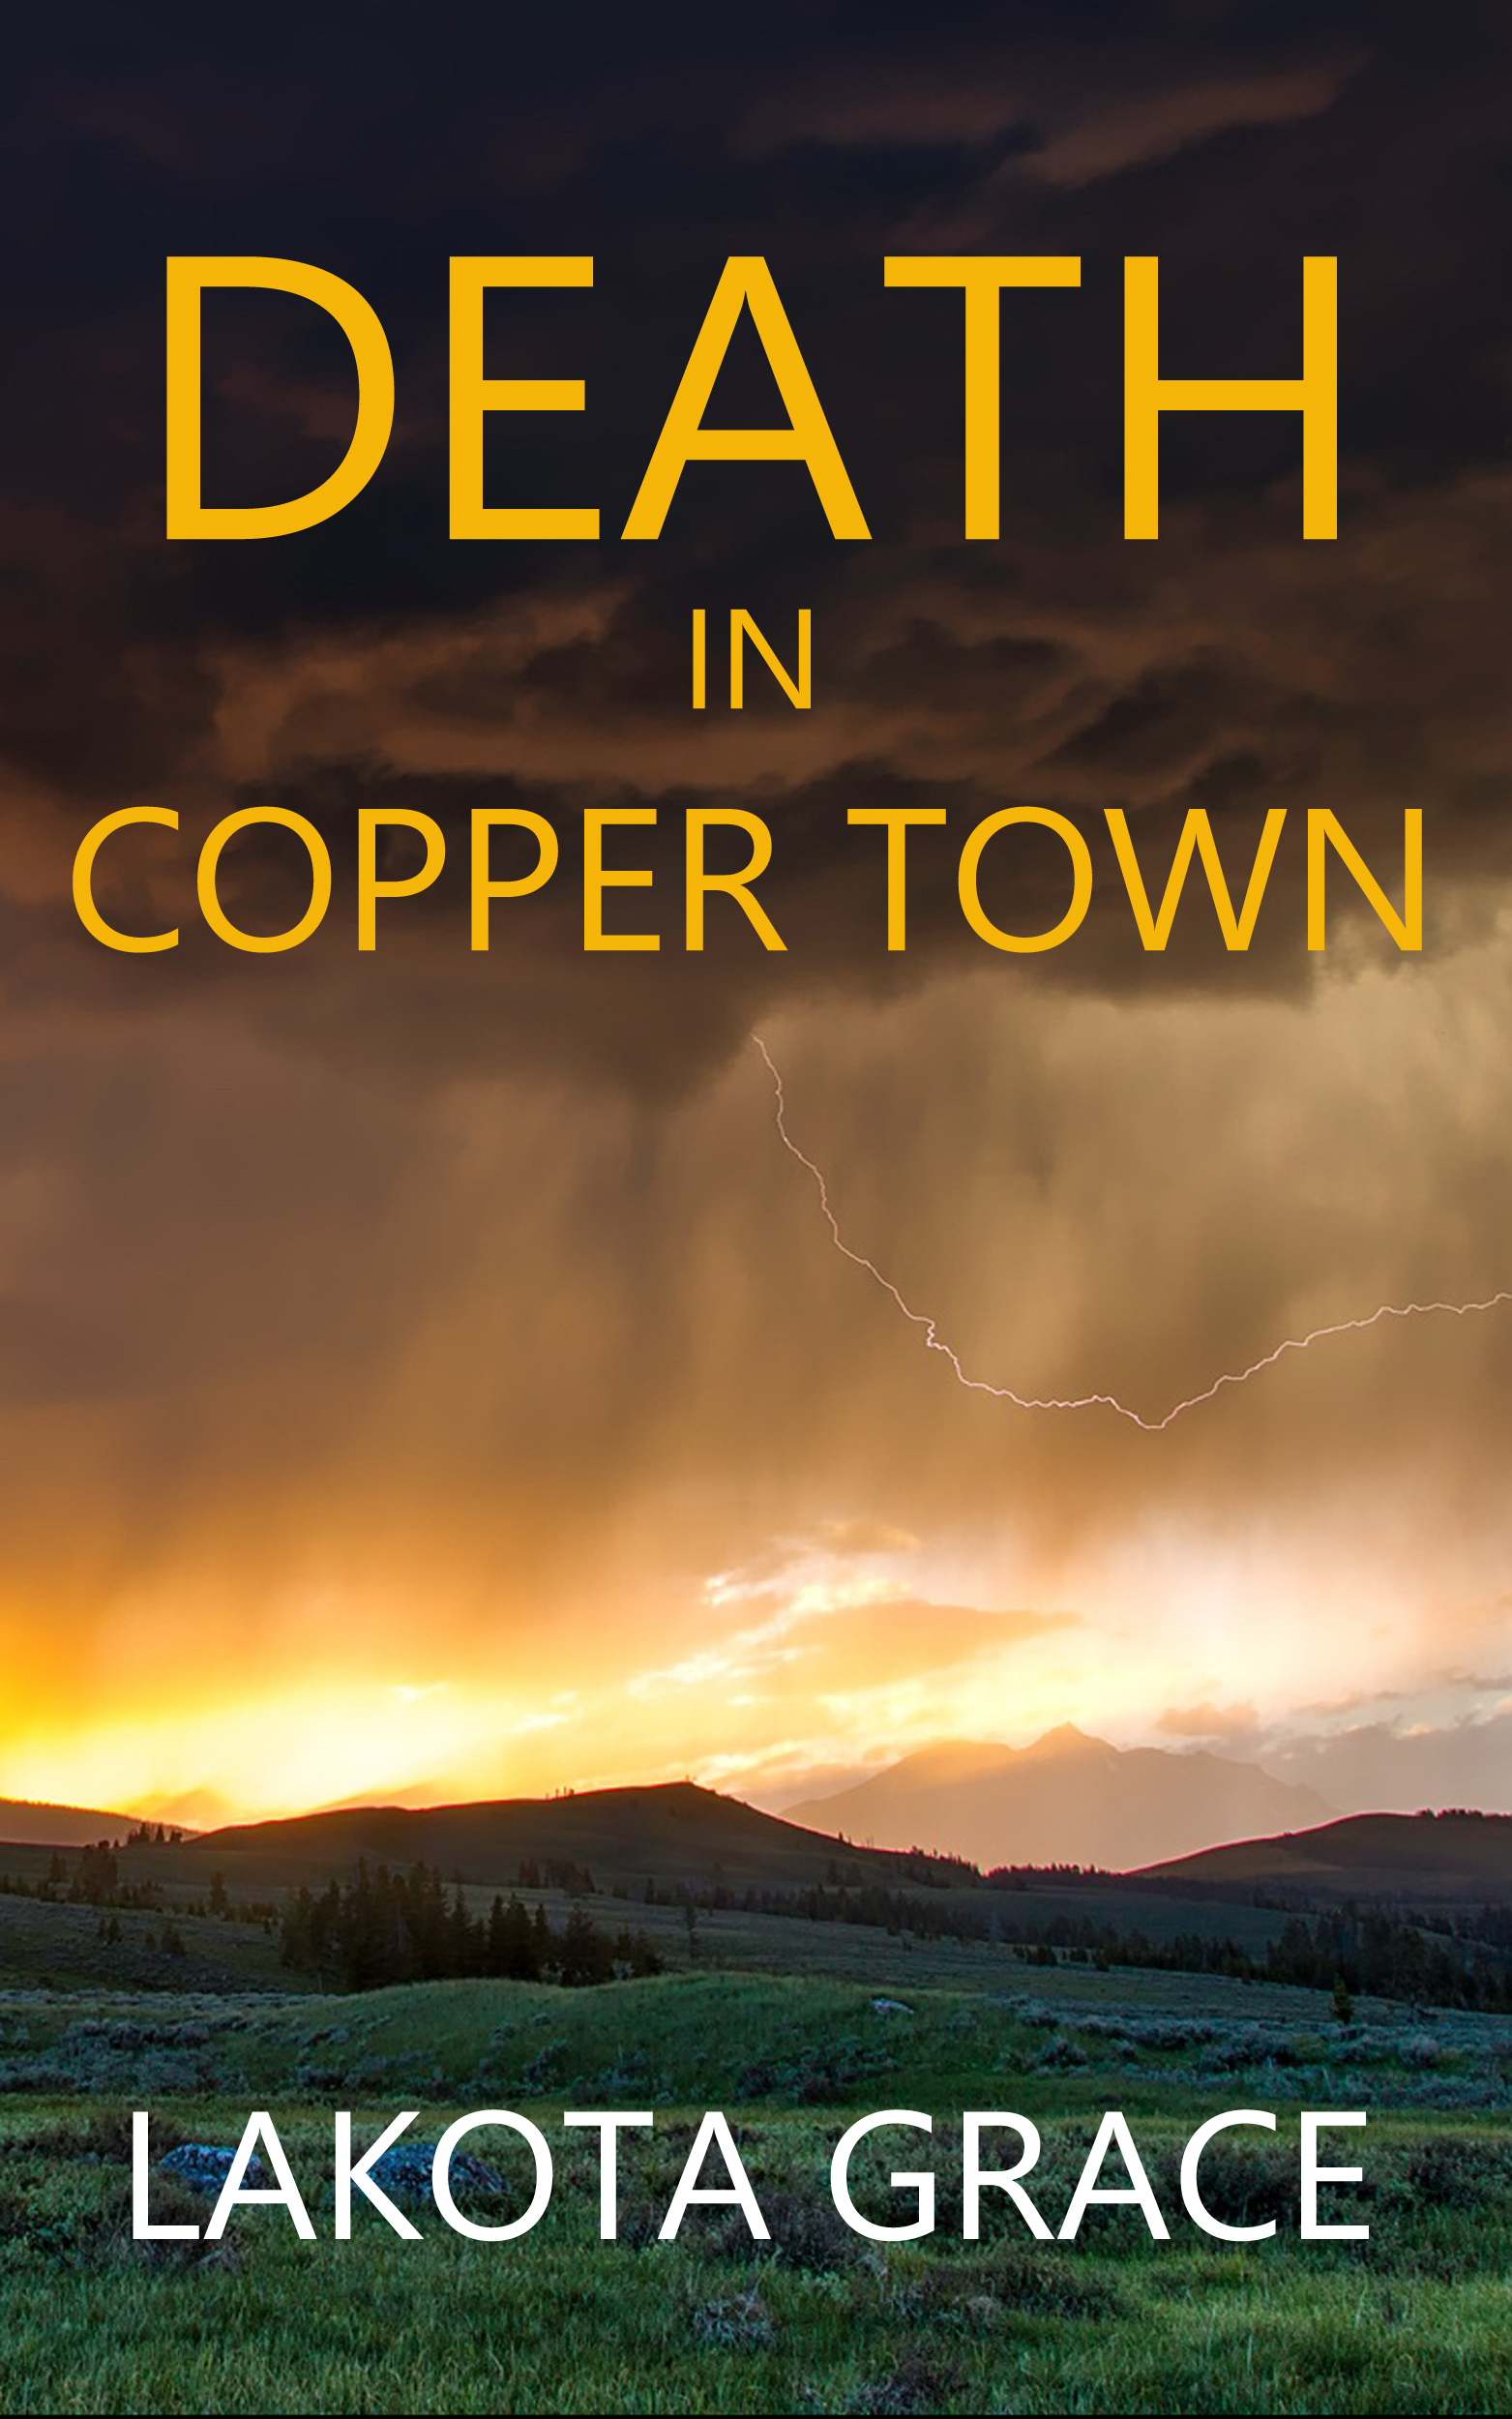 How I developed the character of Pegasus Quincy for DEATH in COPPER TOWN